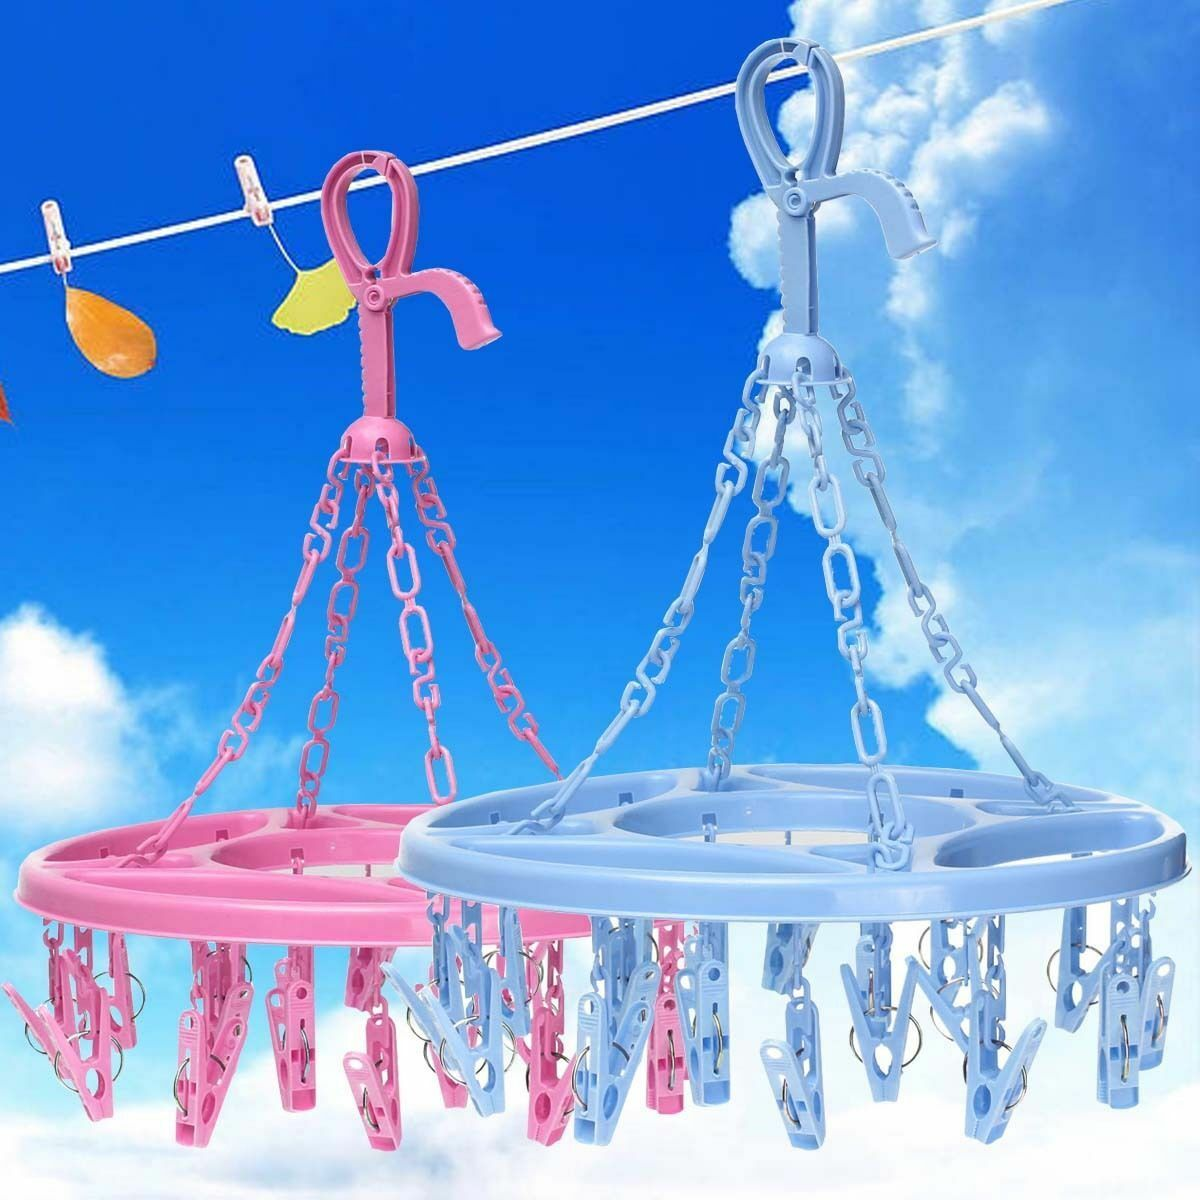 18 Clips Clothes Drying Hanger Drip Rack Socks Bra Undies Dryer